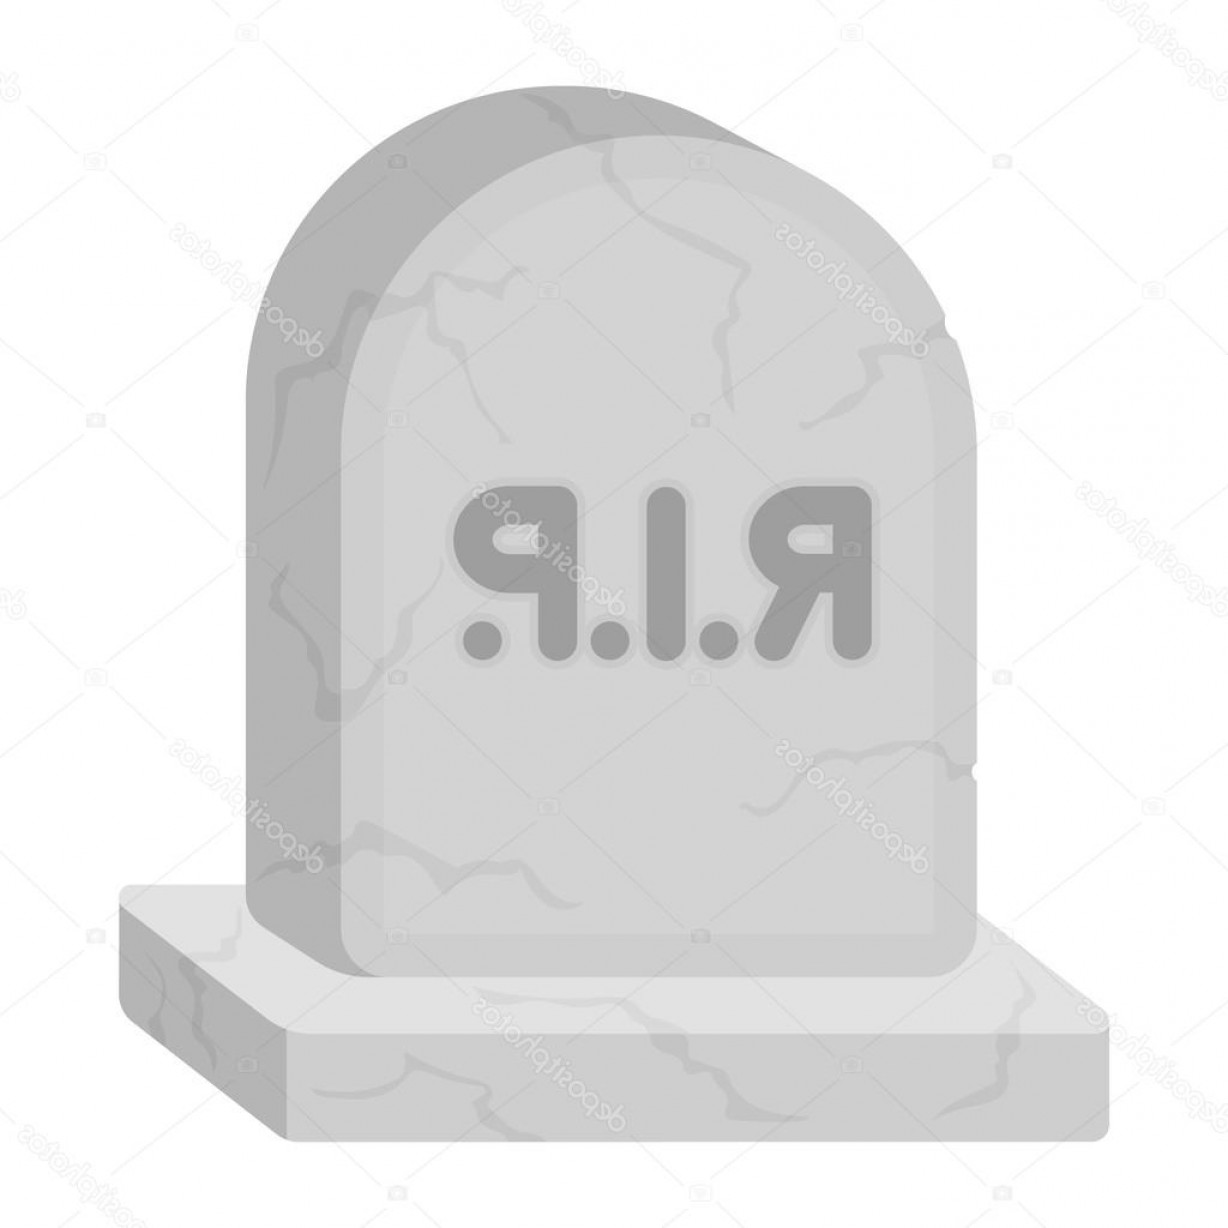 Gravestone Black And Whit Vector JPEG: Stock Illustration Headstone Icon In Cartoon Style